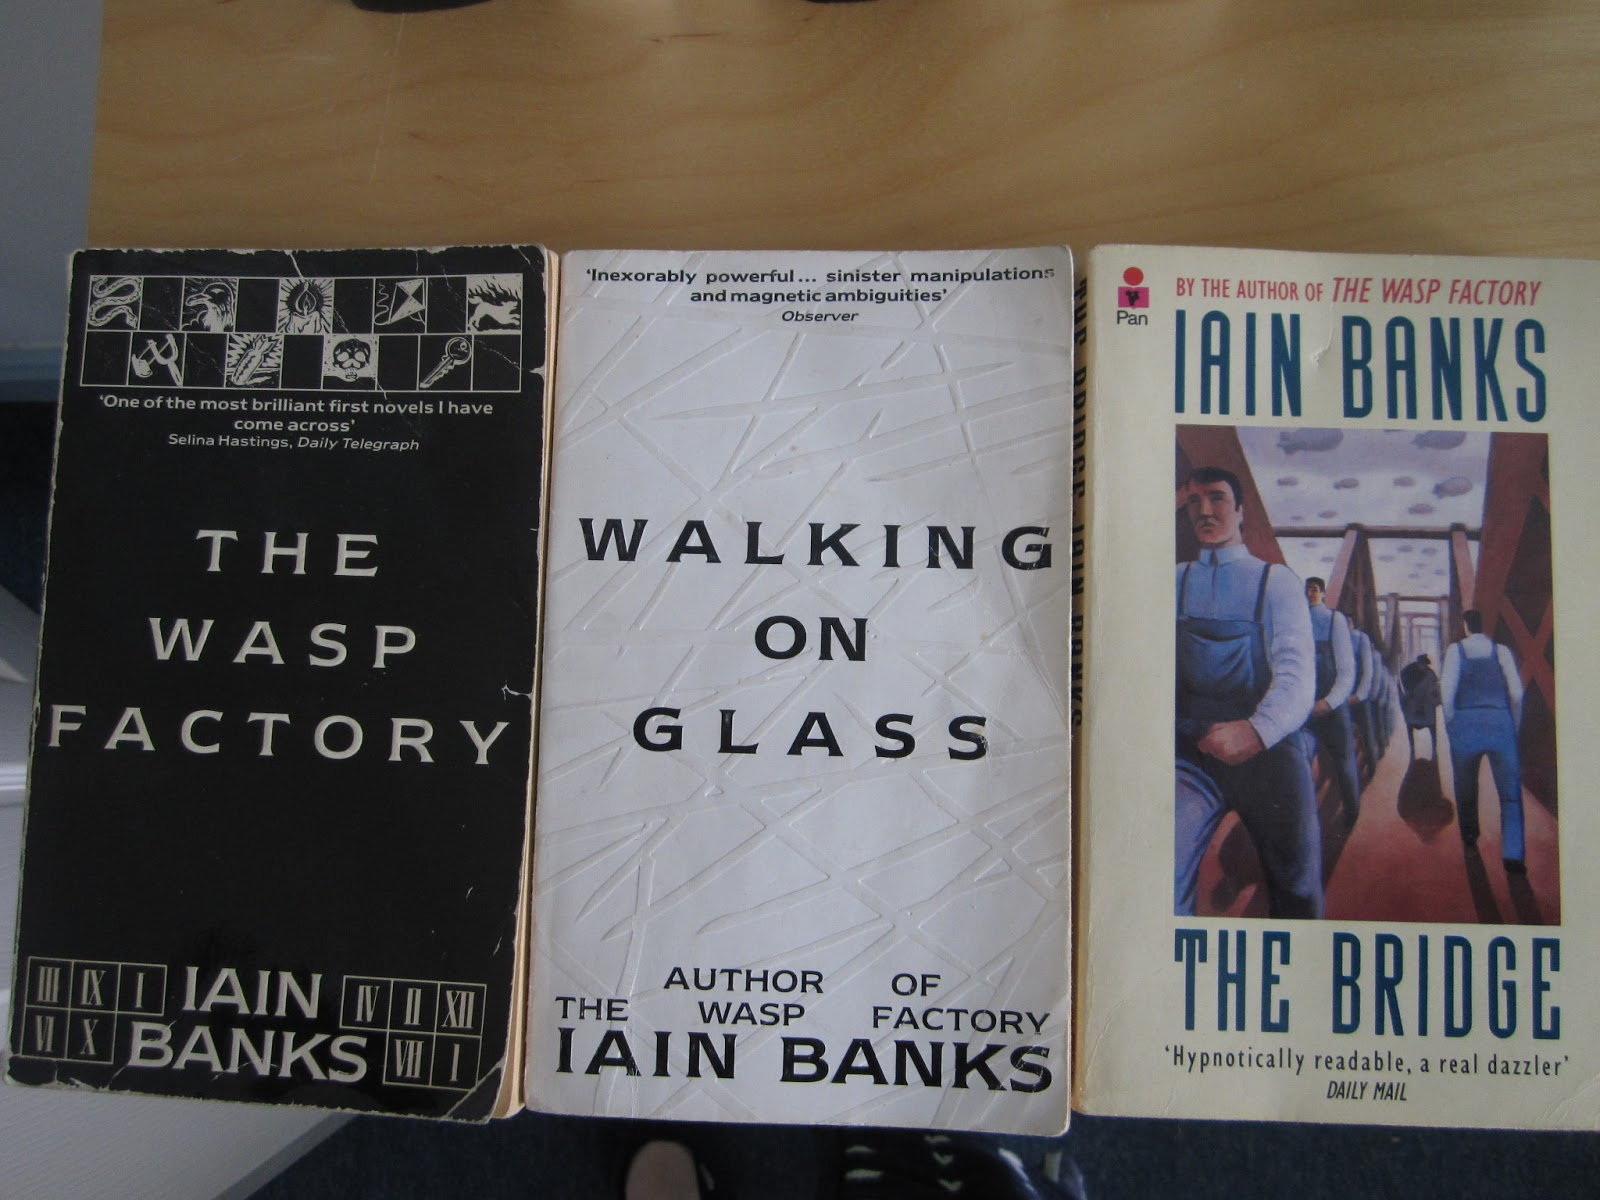 narrative method in works of iain banks Wapspot - download full hd youtube videos.